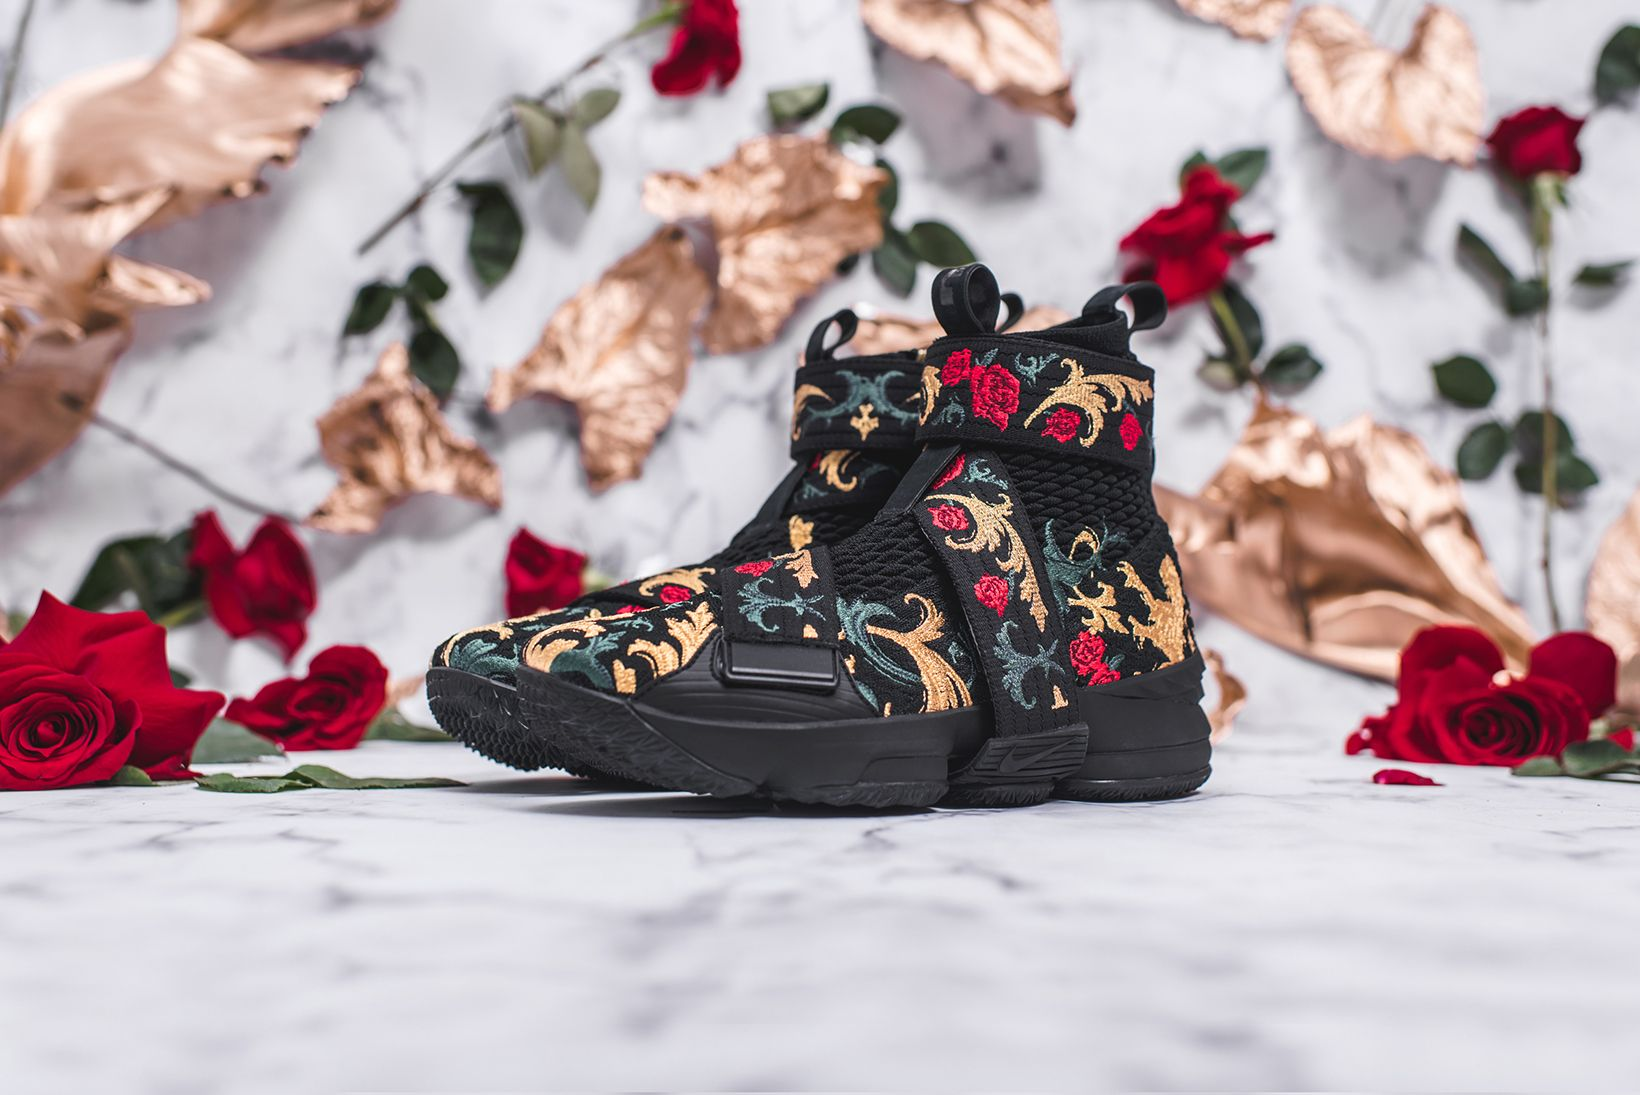 acff80226af463 KITH Long Live the King Collection Chapter 2 LeBron James Ronnie Fieg Nike  Basketball 15 xv